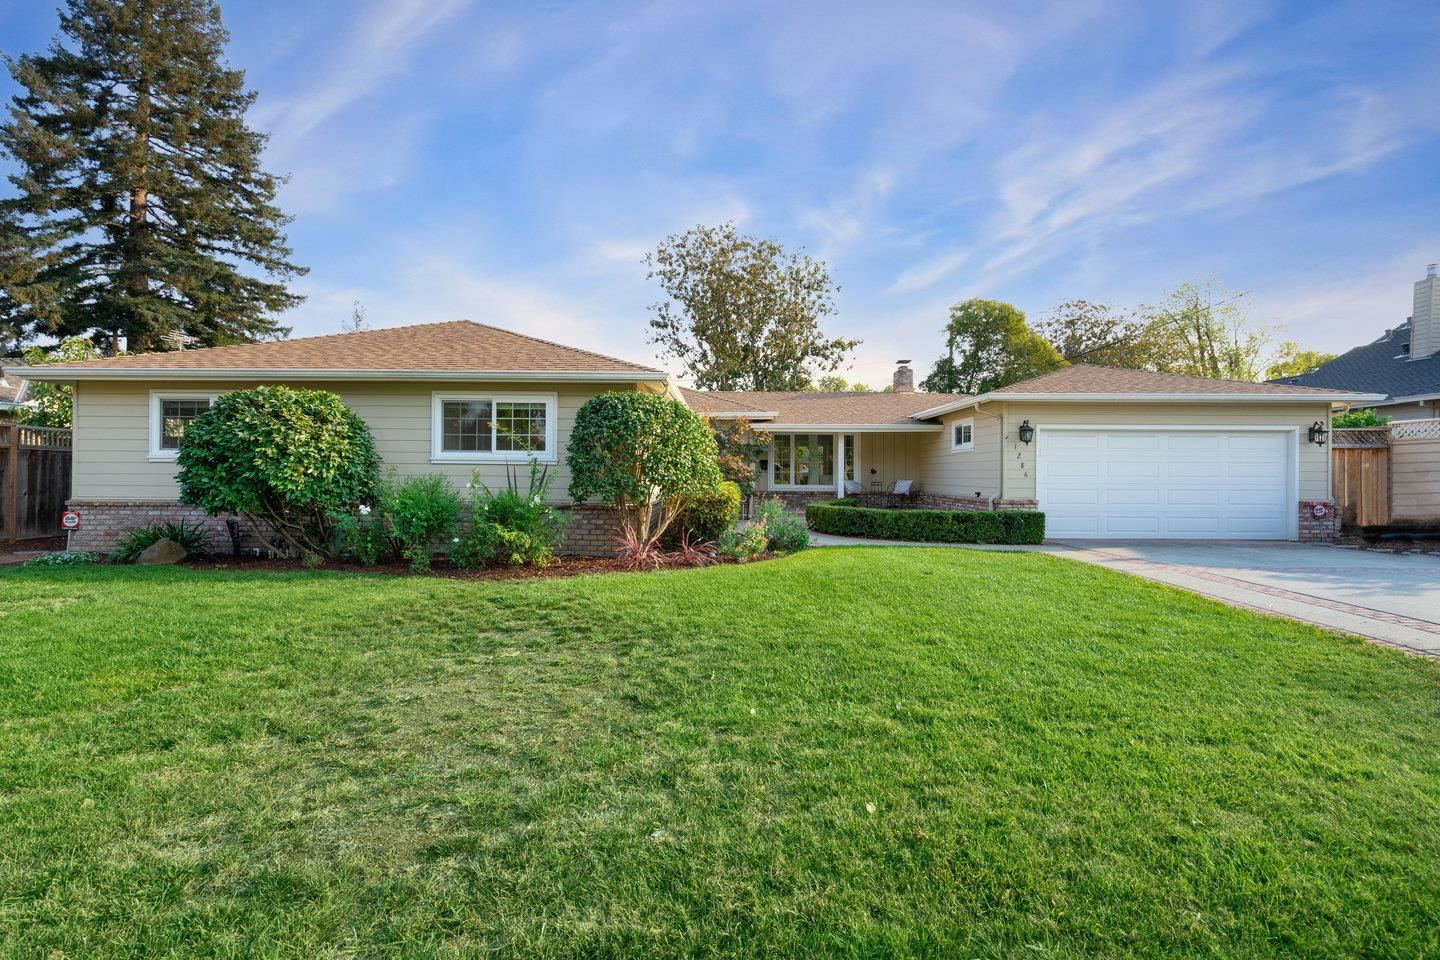 Photo for 1286 Arroyo Seco Drive, CAMPBELL, CA 95008 (MLS # ML81864498)